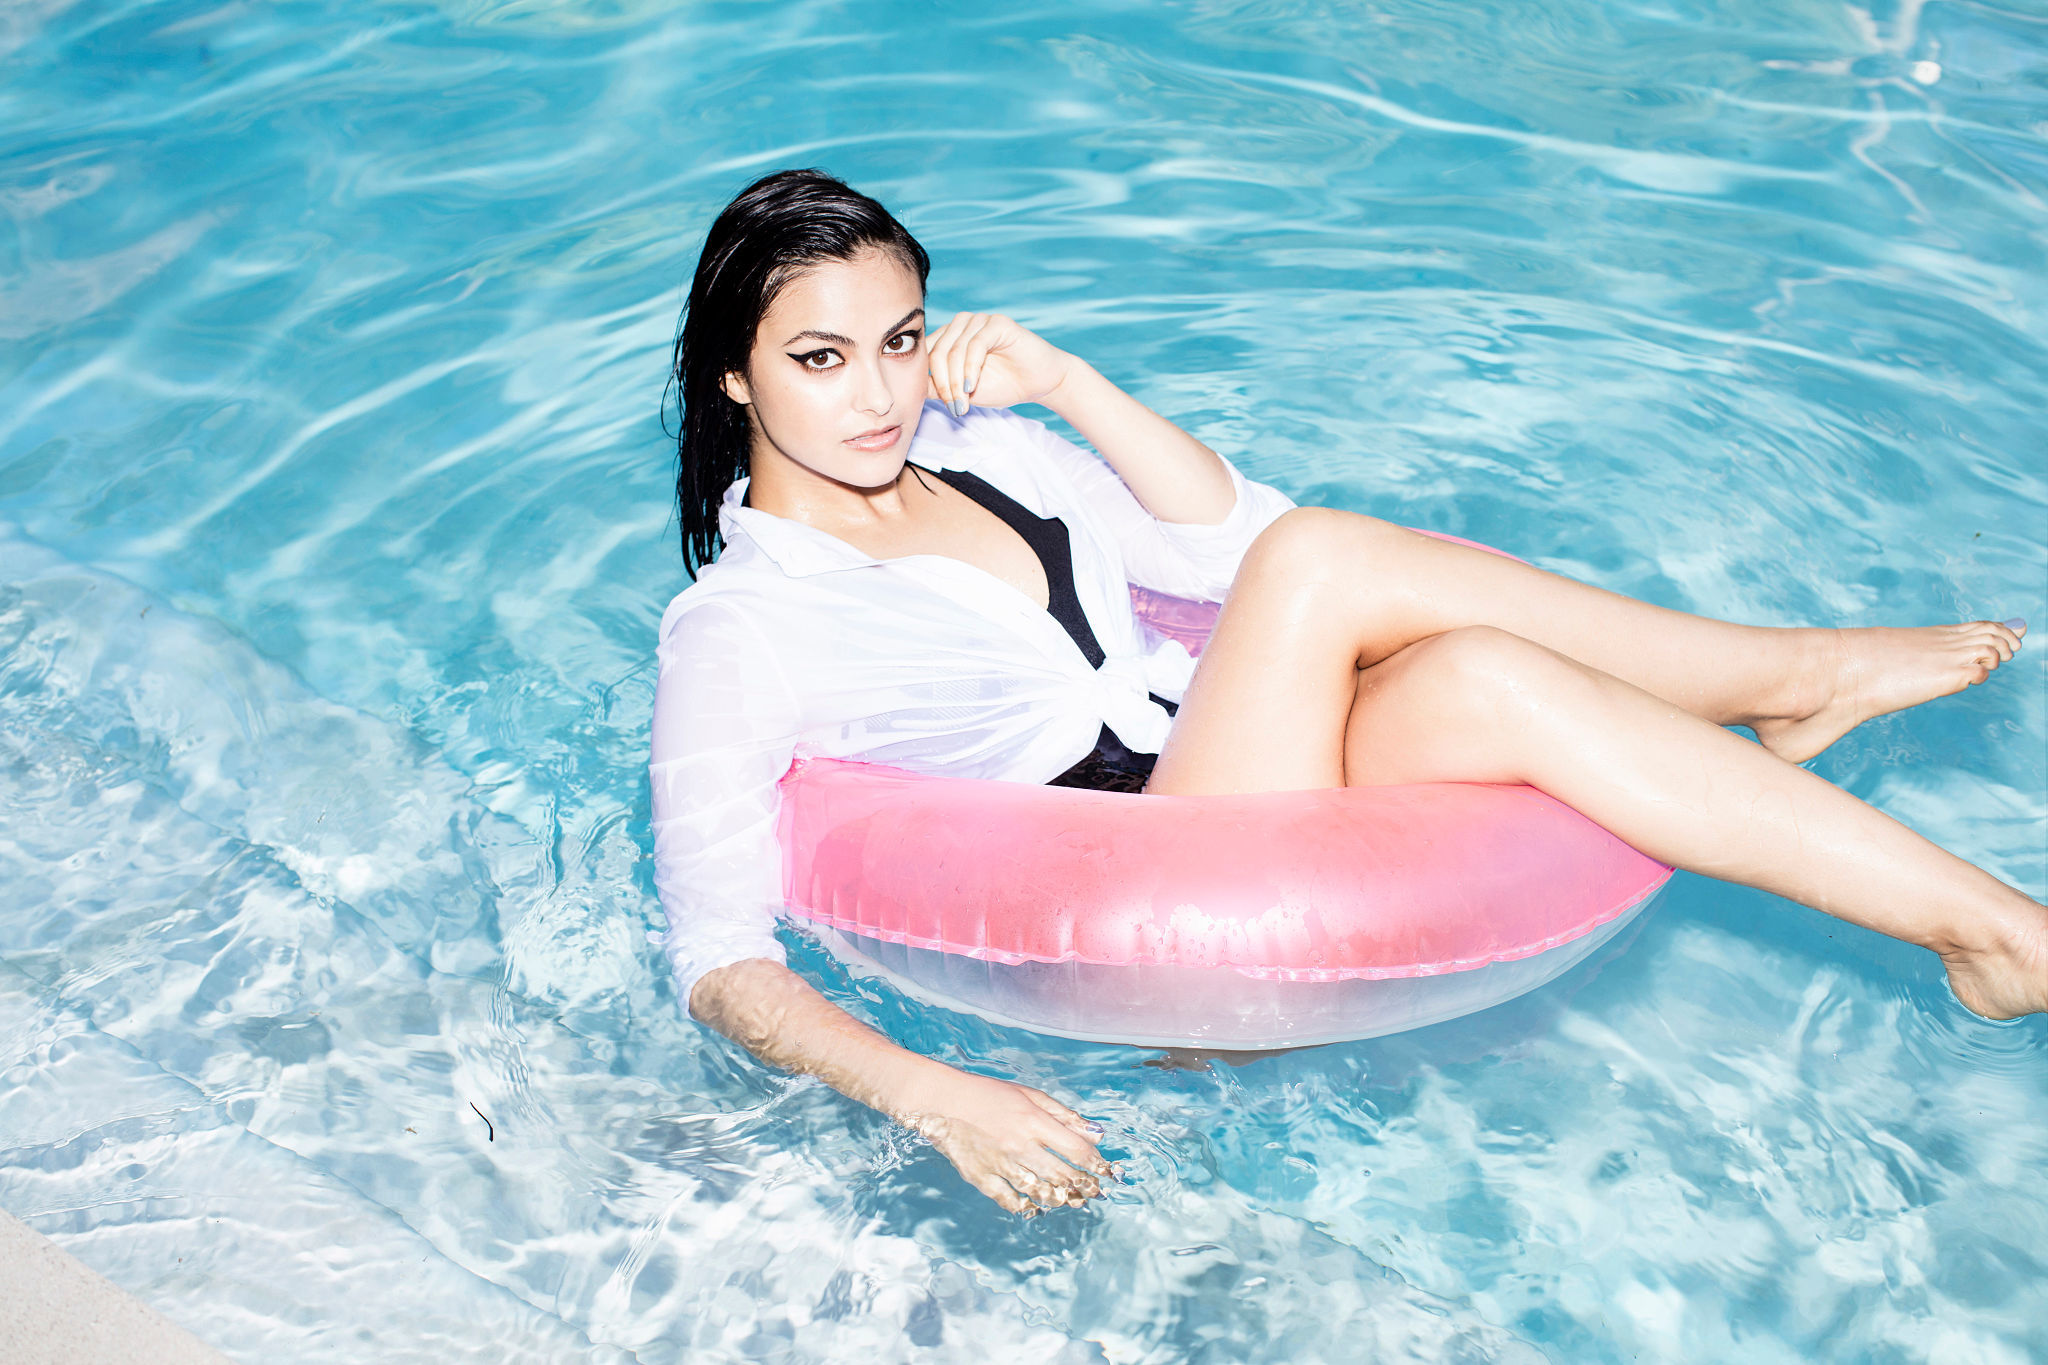 camila mendes pool wallpaper 61281